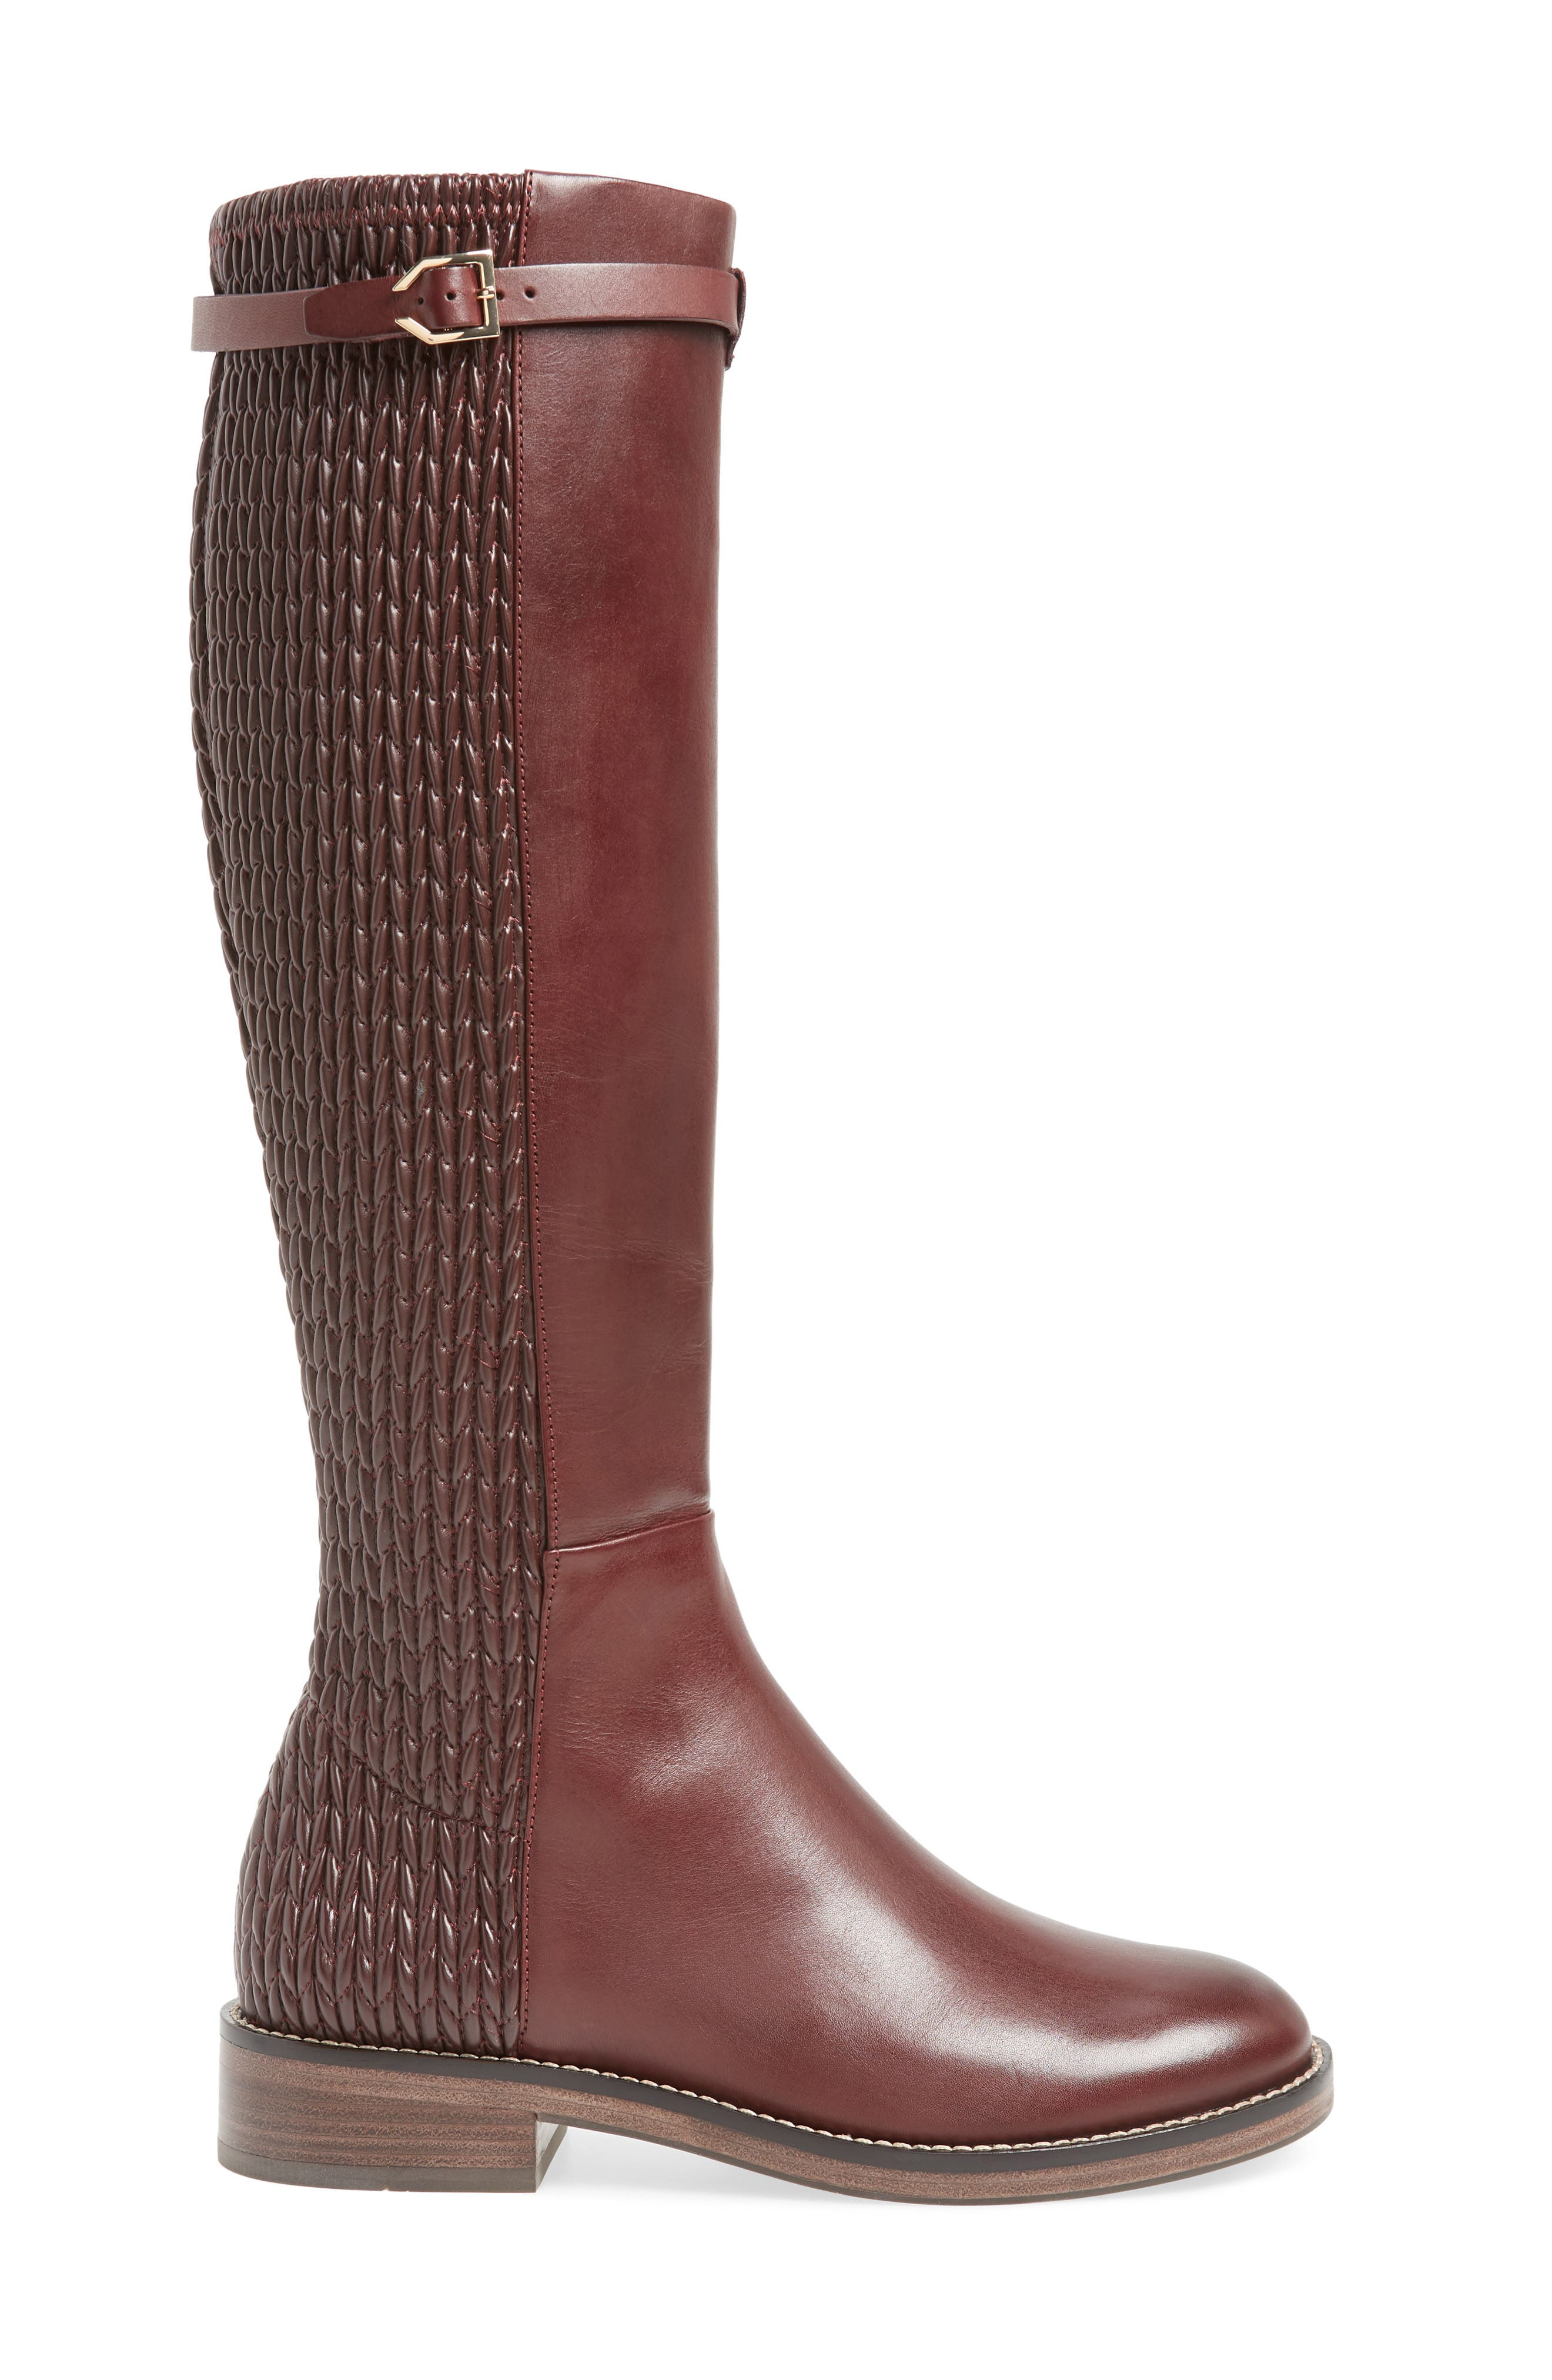 COLE HAAN, Lexi Grand Knee High Stretch Boot, Alternate thumbnail 3, color, CORDOVAN LEATHER